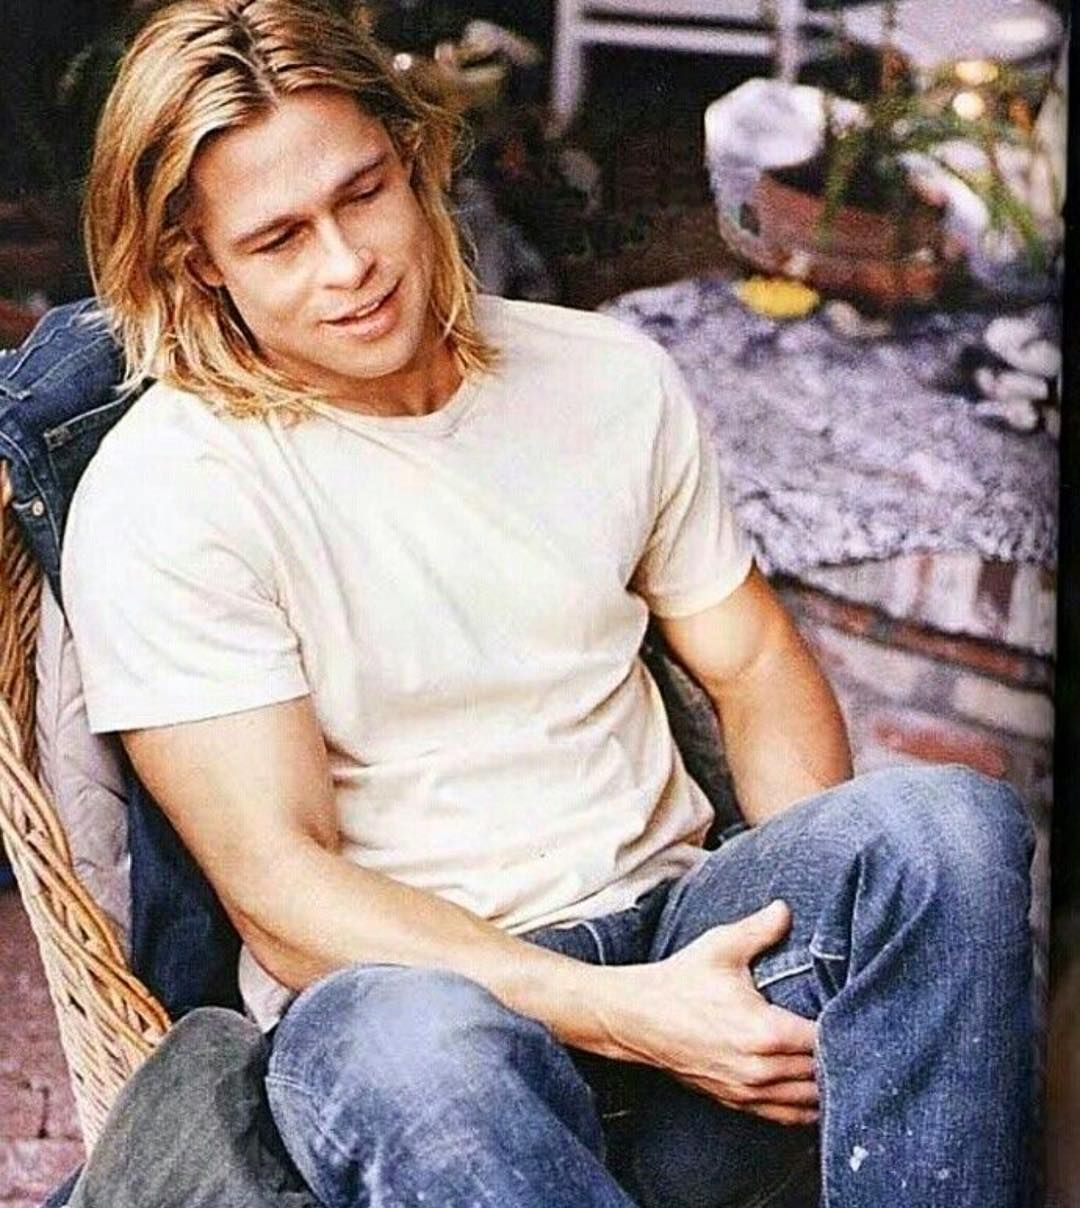 Brad Pitt On Instagram Could He Be Any More Beautiful Bradpitt Handsome Instagood Longhair Pretty Love Brad Pitt Brad Pitt Hair Brad Pitt Long Hair